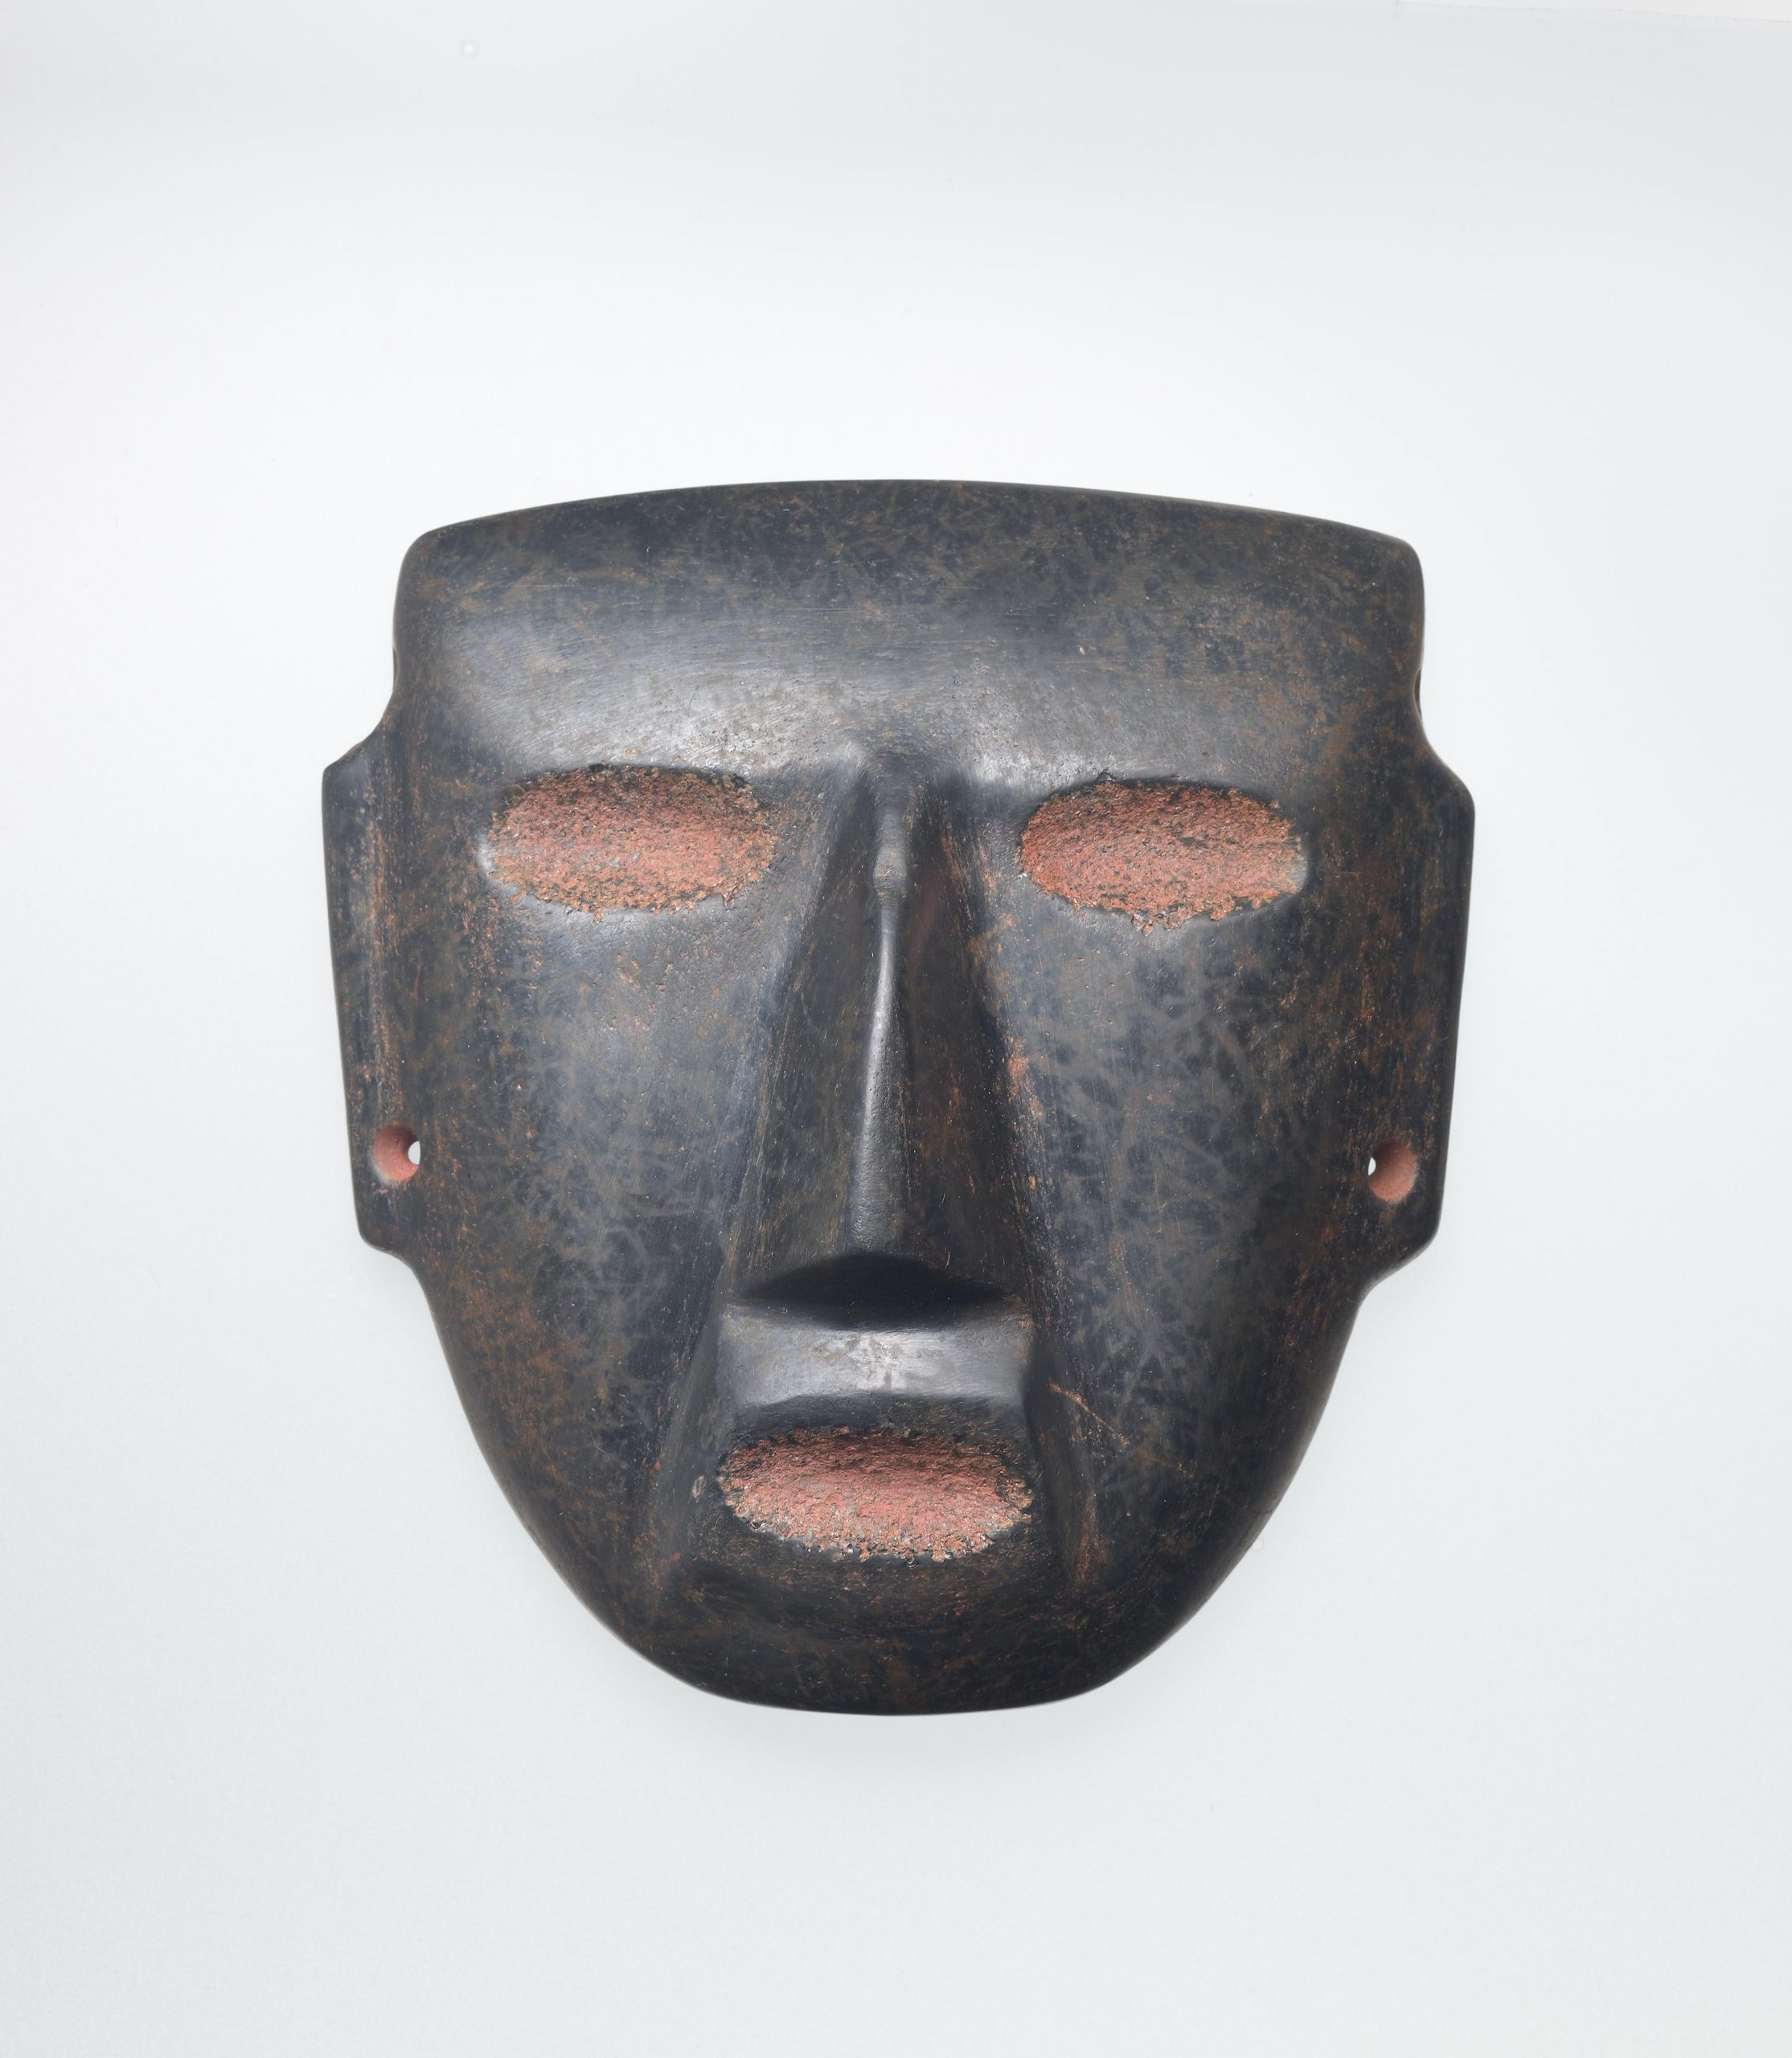 Black stone mask with red eyes and mouth, drilled ear spools, and a triangular nose.